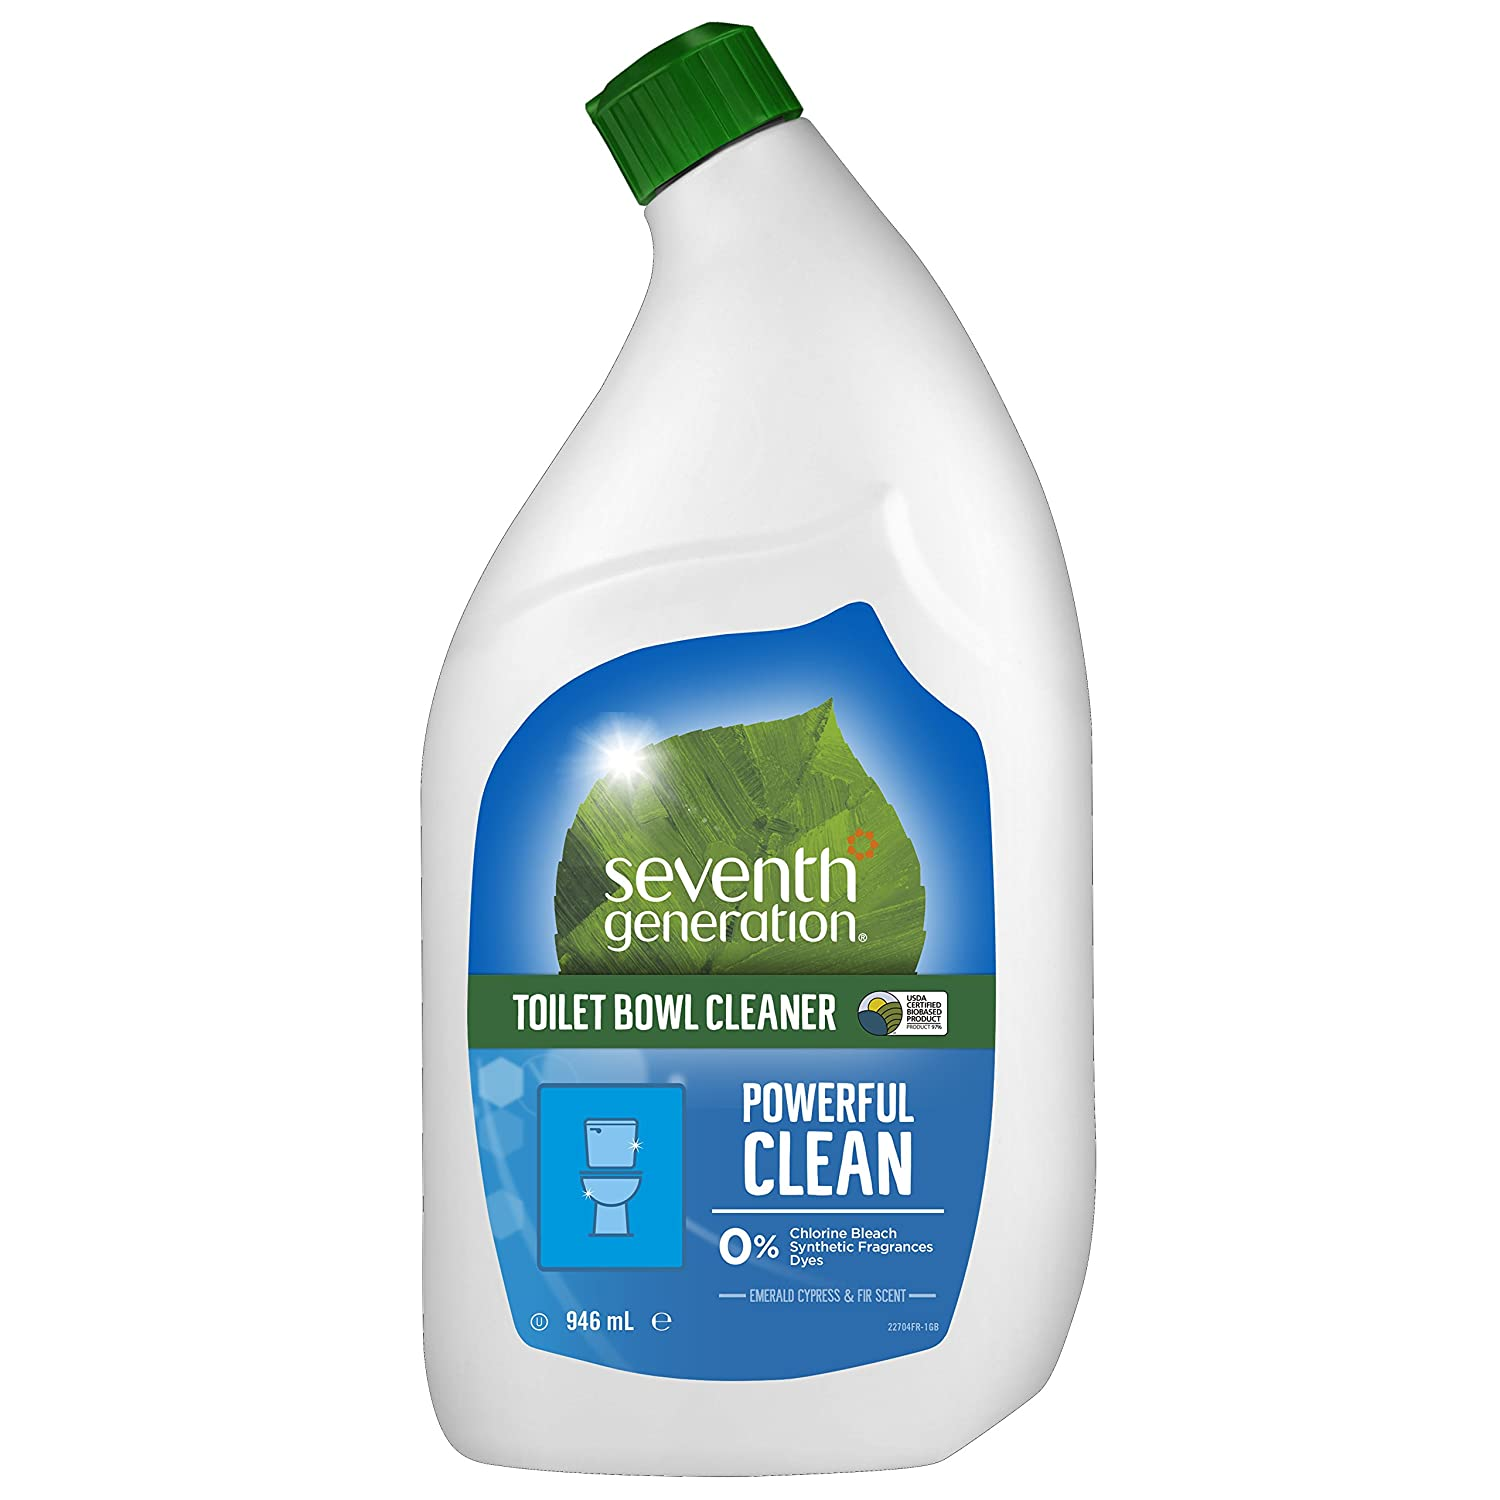 Emerald Cypress and Fir Scent Toilet Bowl Cleaner